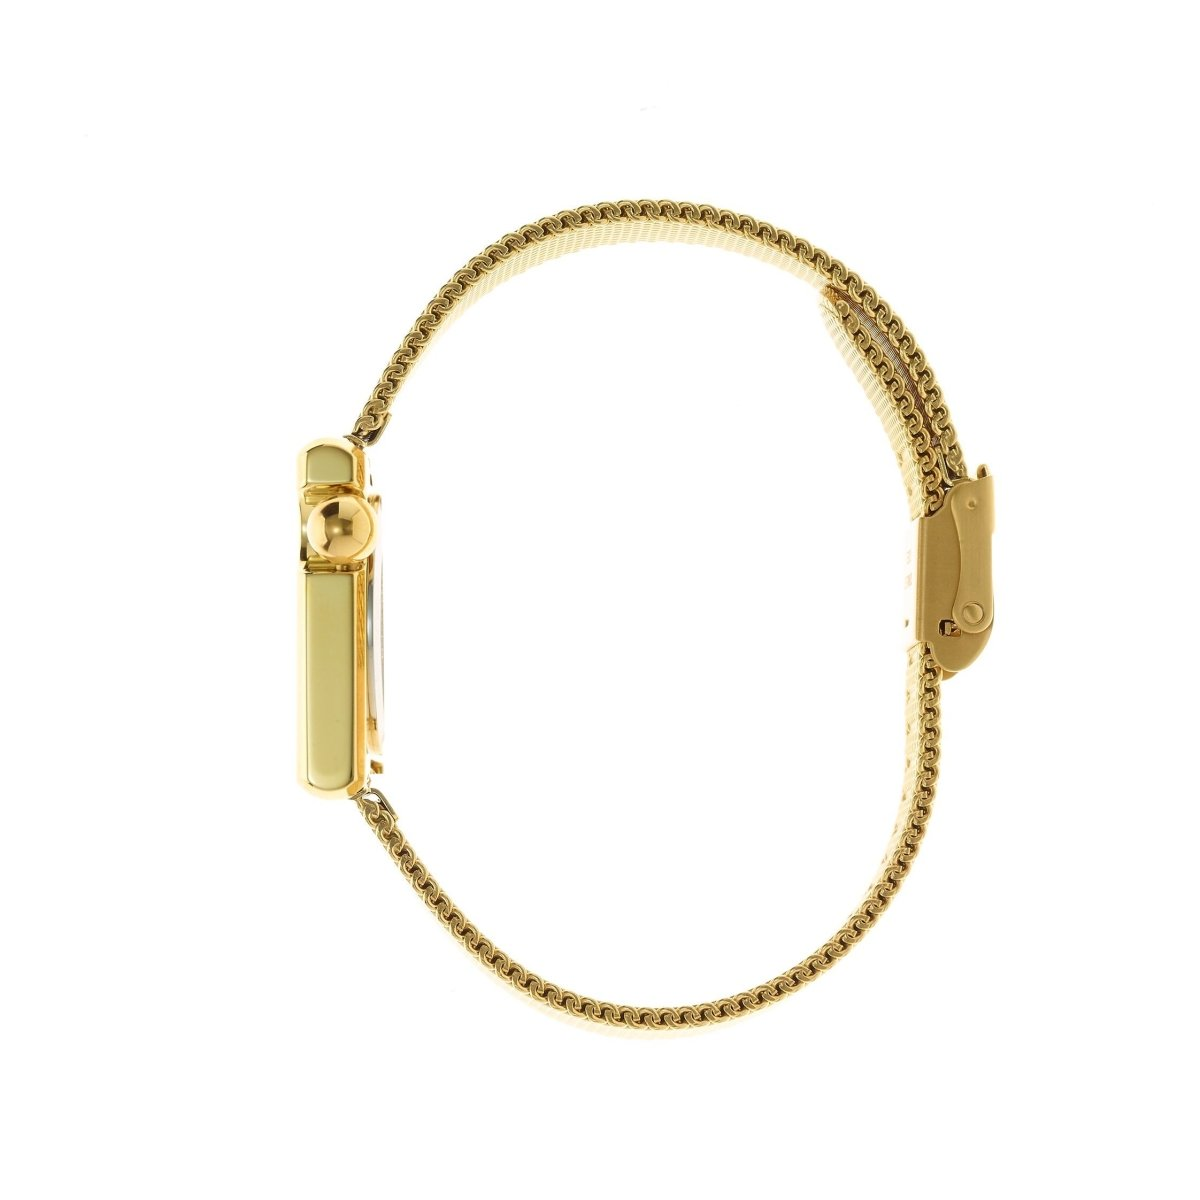 LIP 671109 Mach 2000 Mini Square Gold Stainless Steel Bracelet - Goldy Jewelry